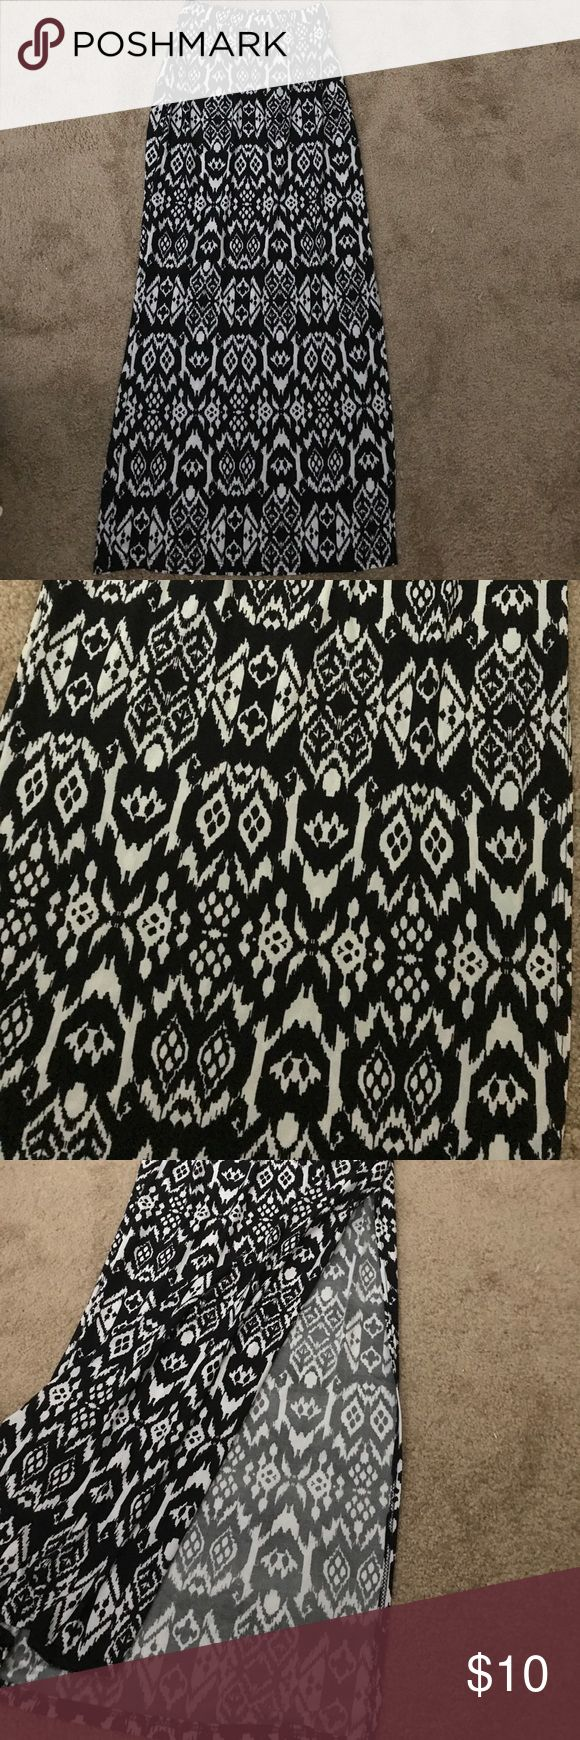 Aztec maxi skirt Size small black and white Aztec maxi with side slip. Gorgeous pattern and perfect for an occasion! So versatile! ❤️ make a statement with this maxi skirt!! Skirts Maxi